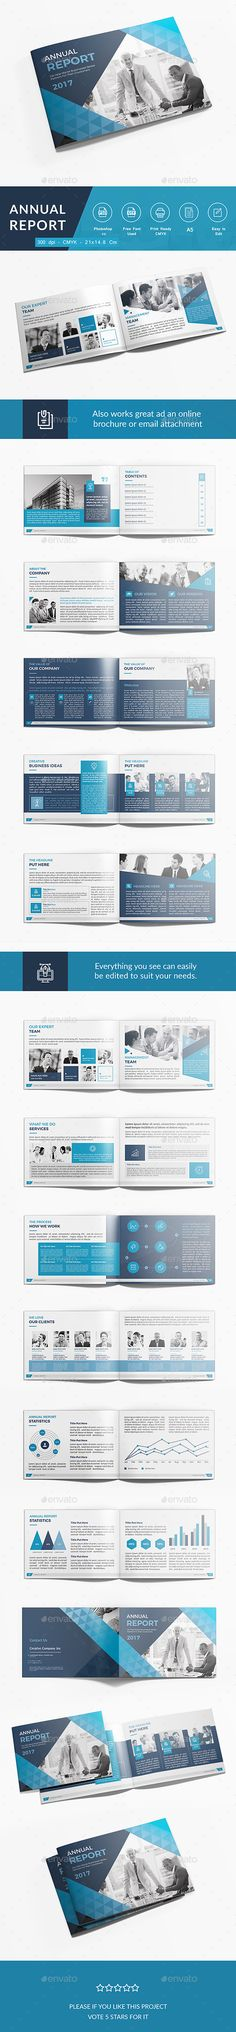 #Annual Report - #Corporate #Brochures Download here: https://graphicriver.net/item/annual-report/18483892?ref=alena994